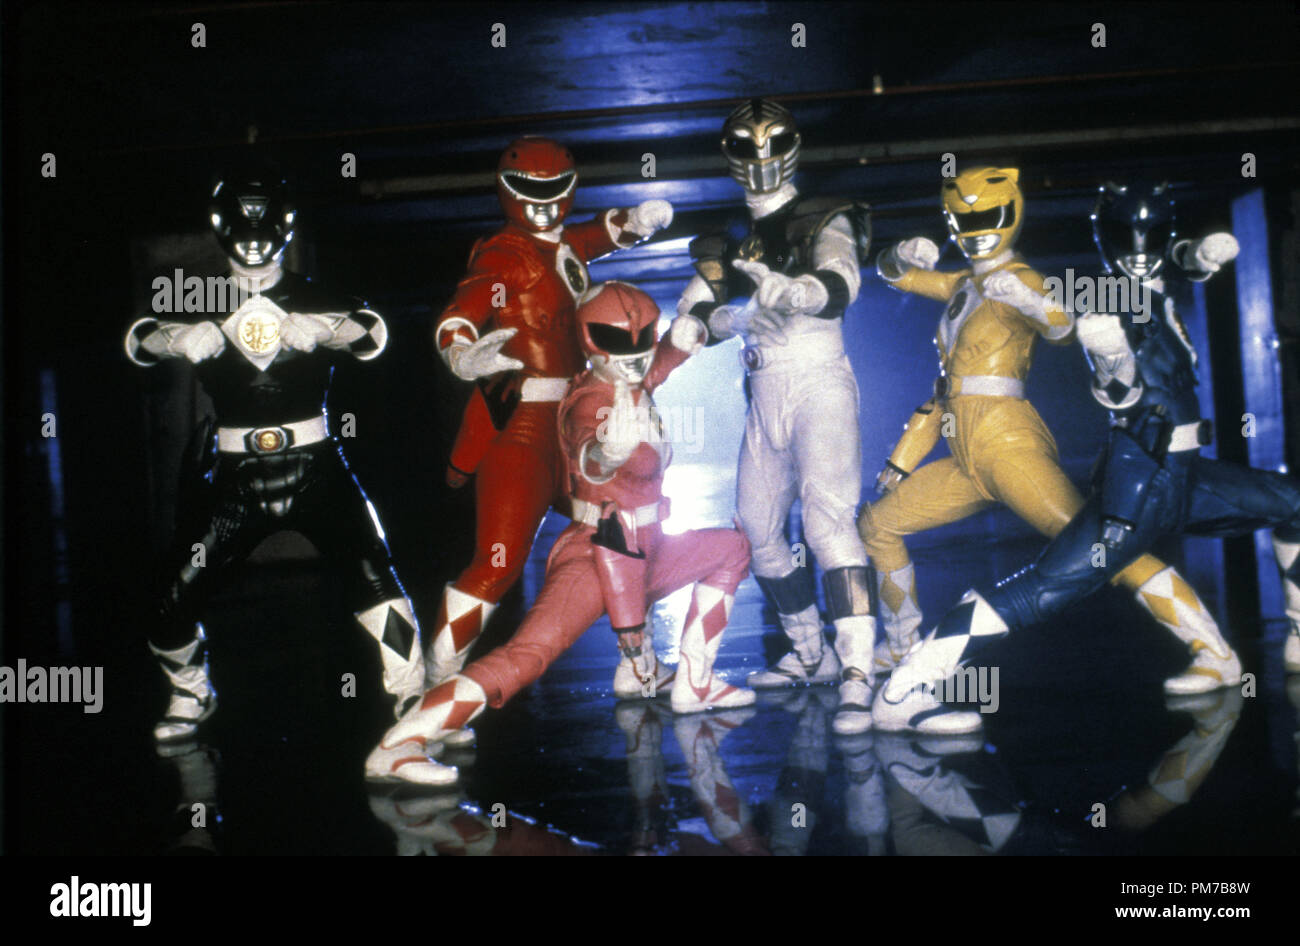 Film Still from 'Mighty Morphin Power Rangers: The Movie' Johnny Yong Bosch, Steve Cardenas, Amy Jo Johnson, Jason David Frank, Karan Ashley, David Yost © 1995 20th Century Fox Photo Credit: Marc Vignes  File Reference # 31043214THA  For Editorial Use Only - All Rights Reserved - Stock Image